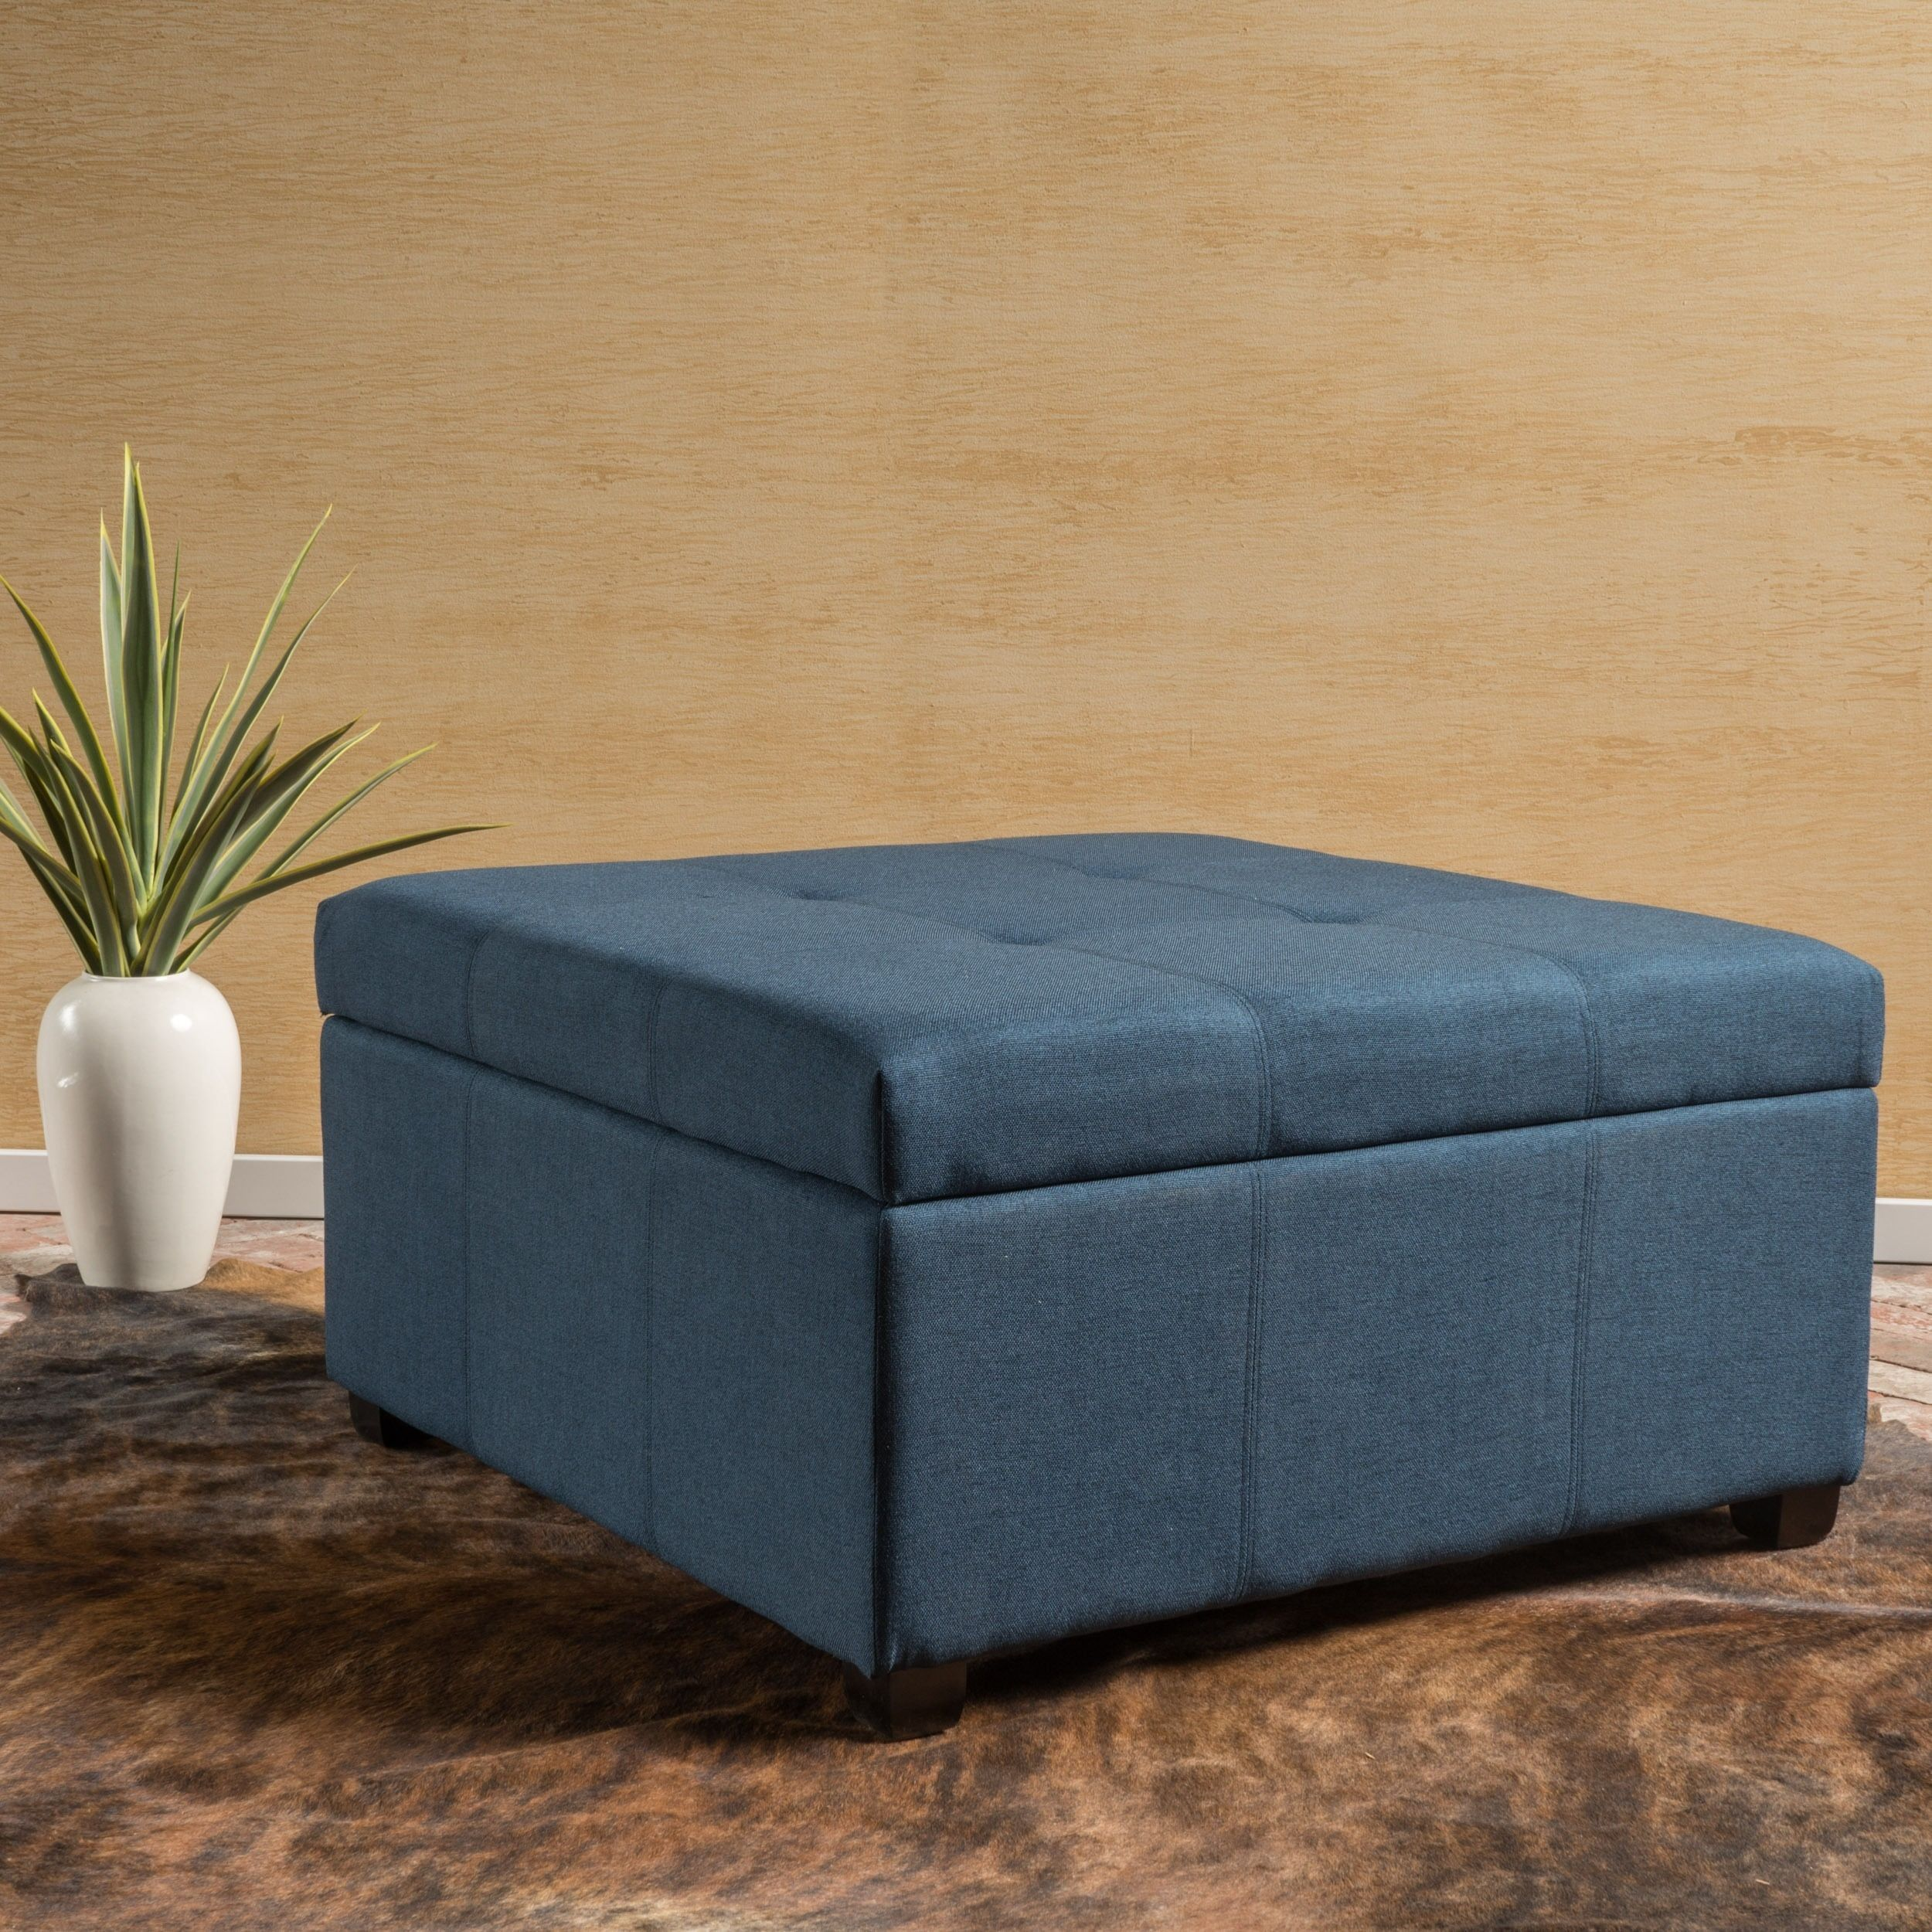 Square Storage Ottoman Ottomans Kick Up Your Feet And Rest Them On Top Of One These Can Add A Footrest To Chairs That Do